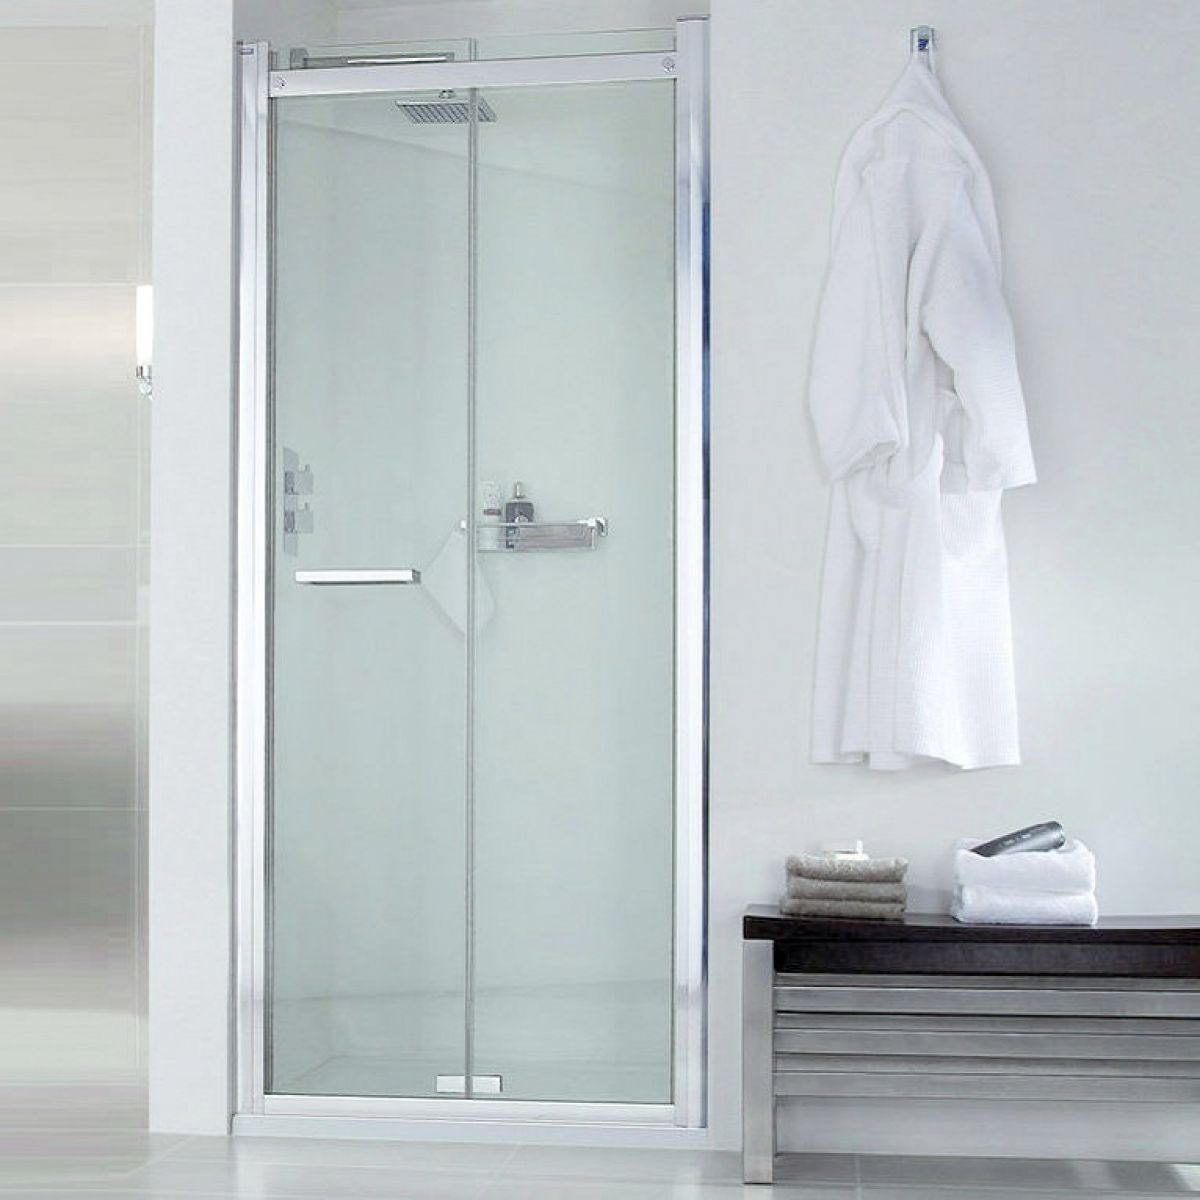 Aqata Spectra Sp480 Bi Fold Door Uk Bathrooms